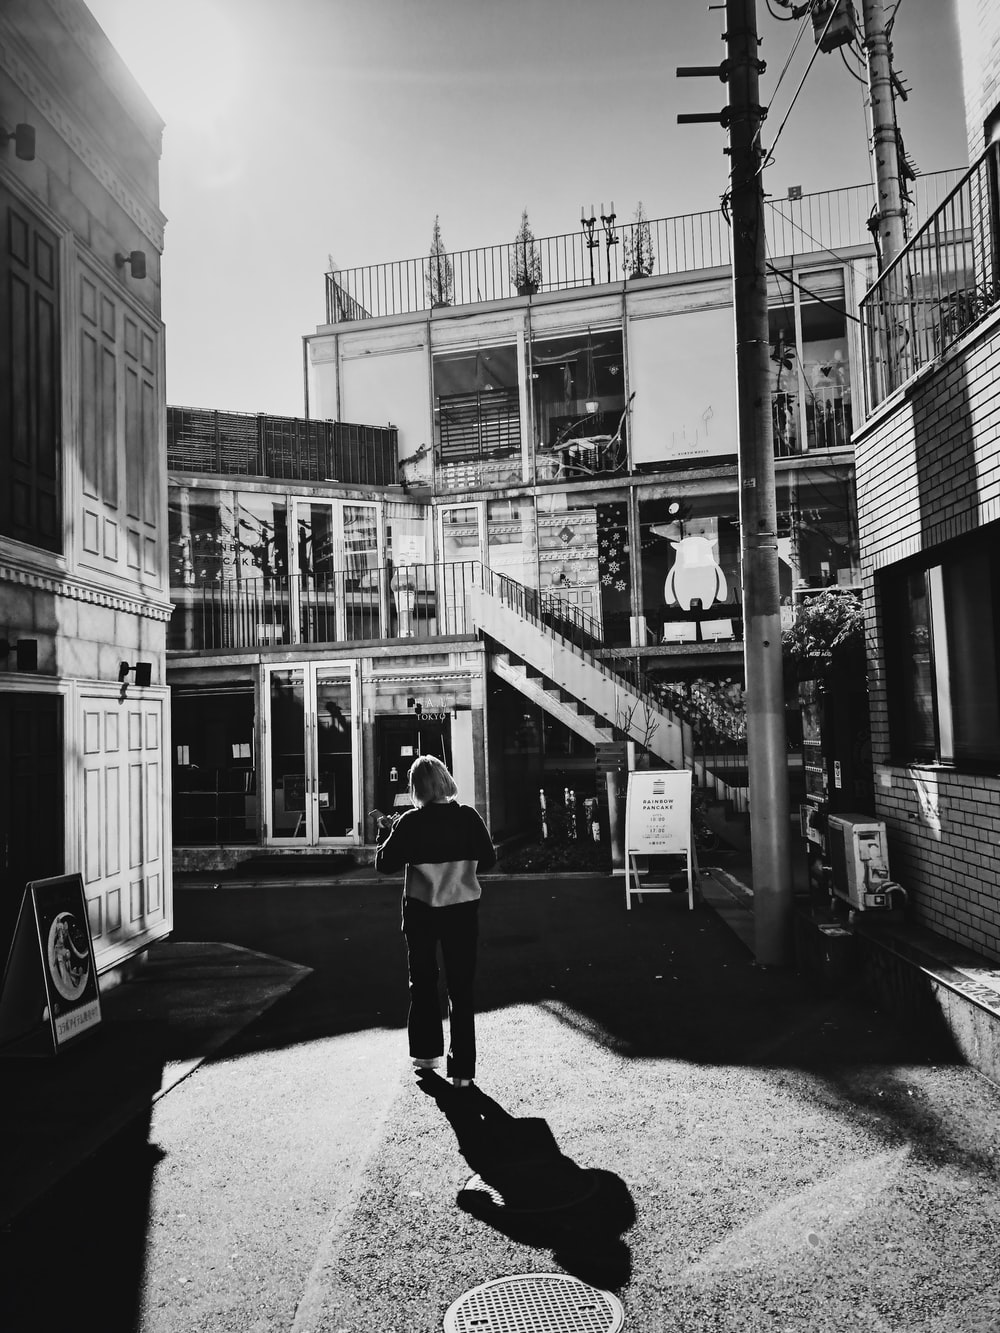 person standing in front of building in greyscale photographt